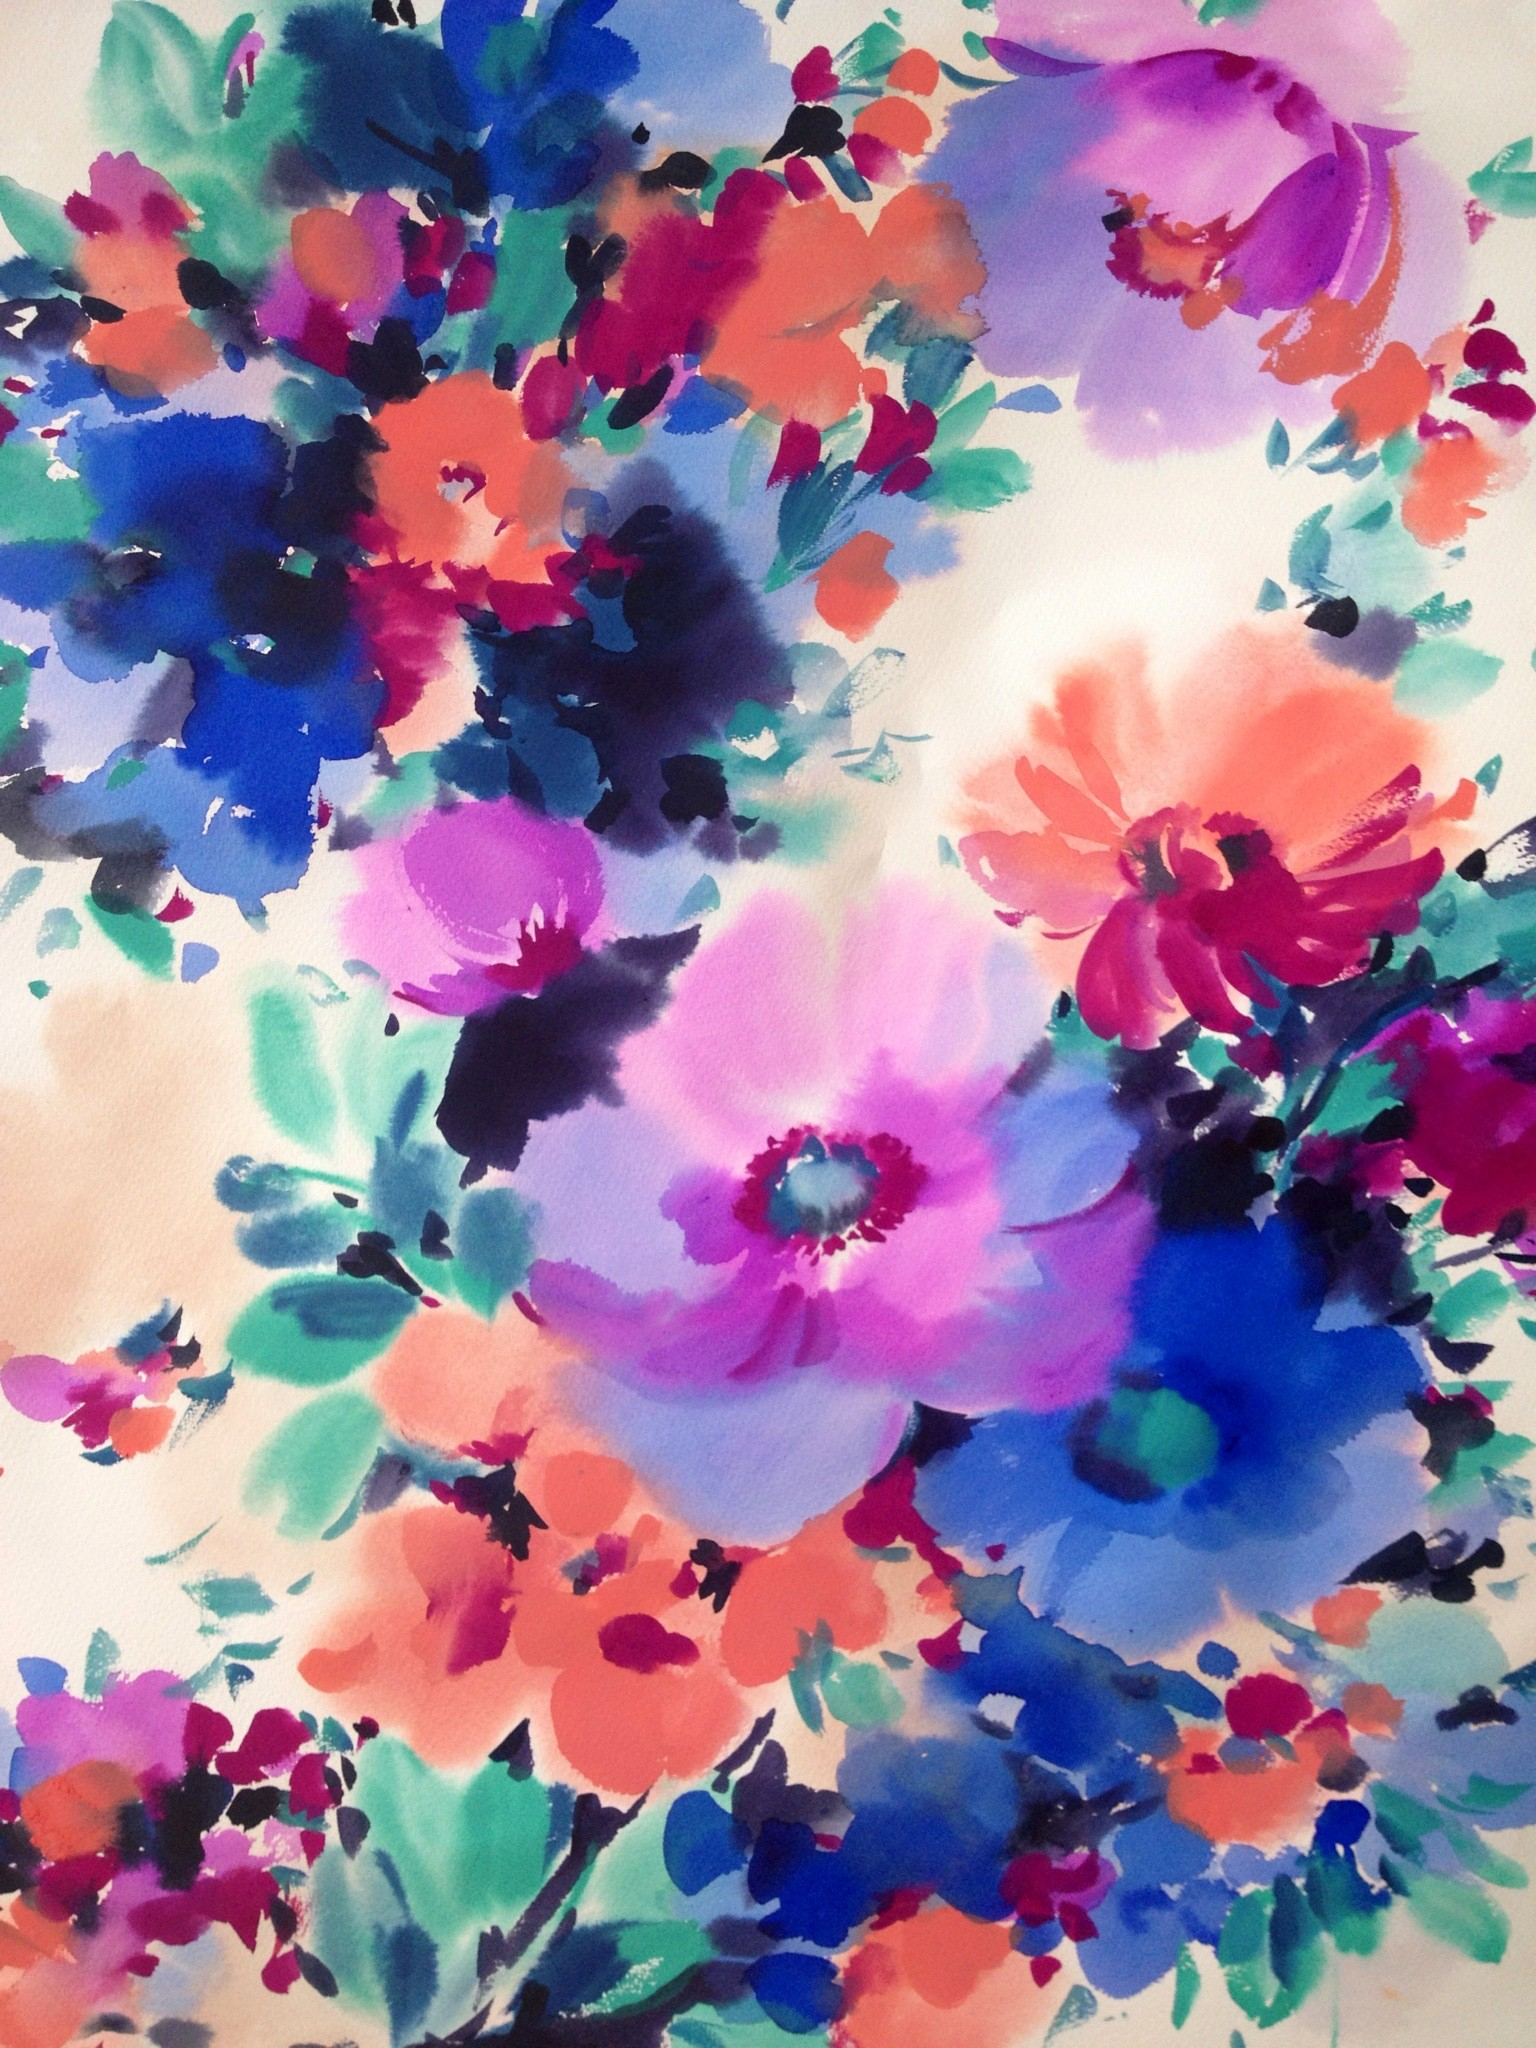 Watercolor background tumblr download free beautiful - High resolution watercolor flowers ...